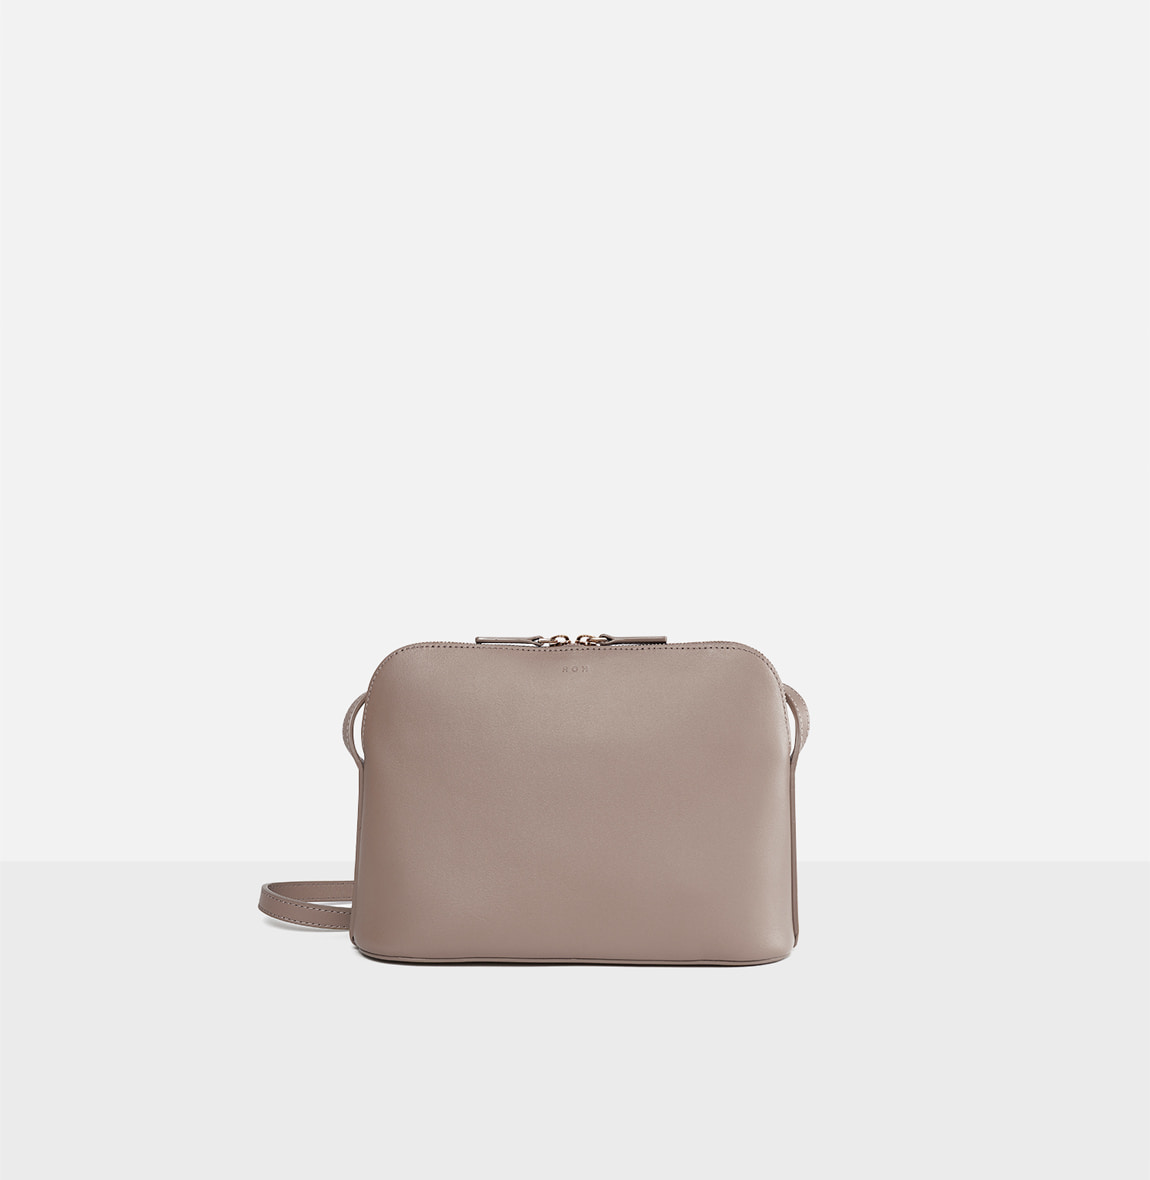 Around W medium shoulder bag Beige